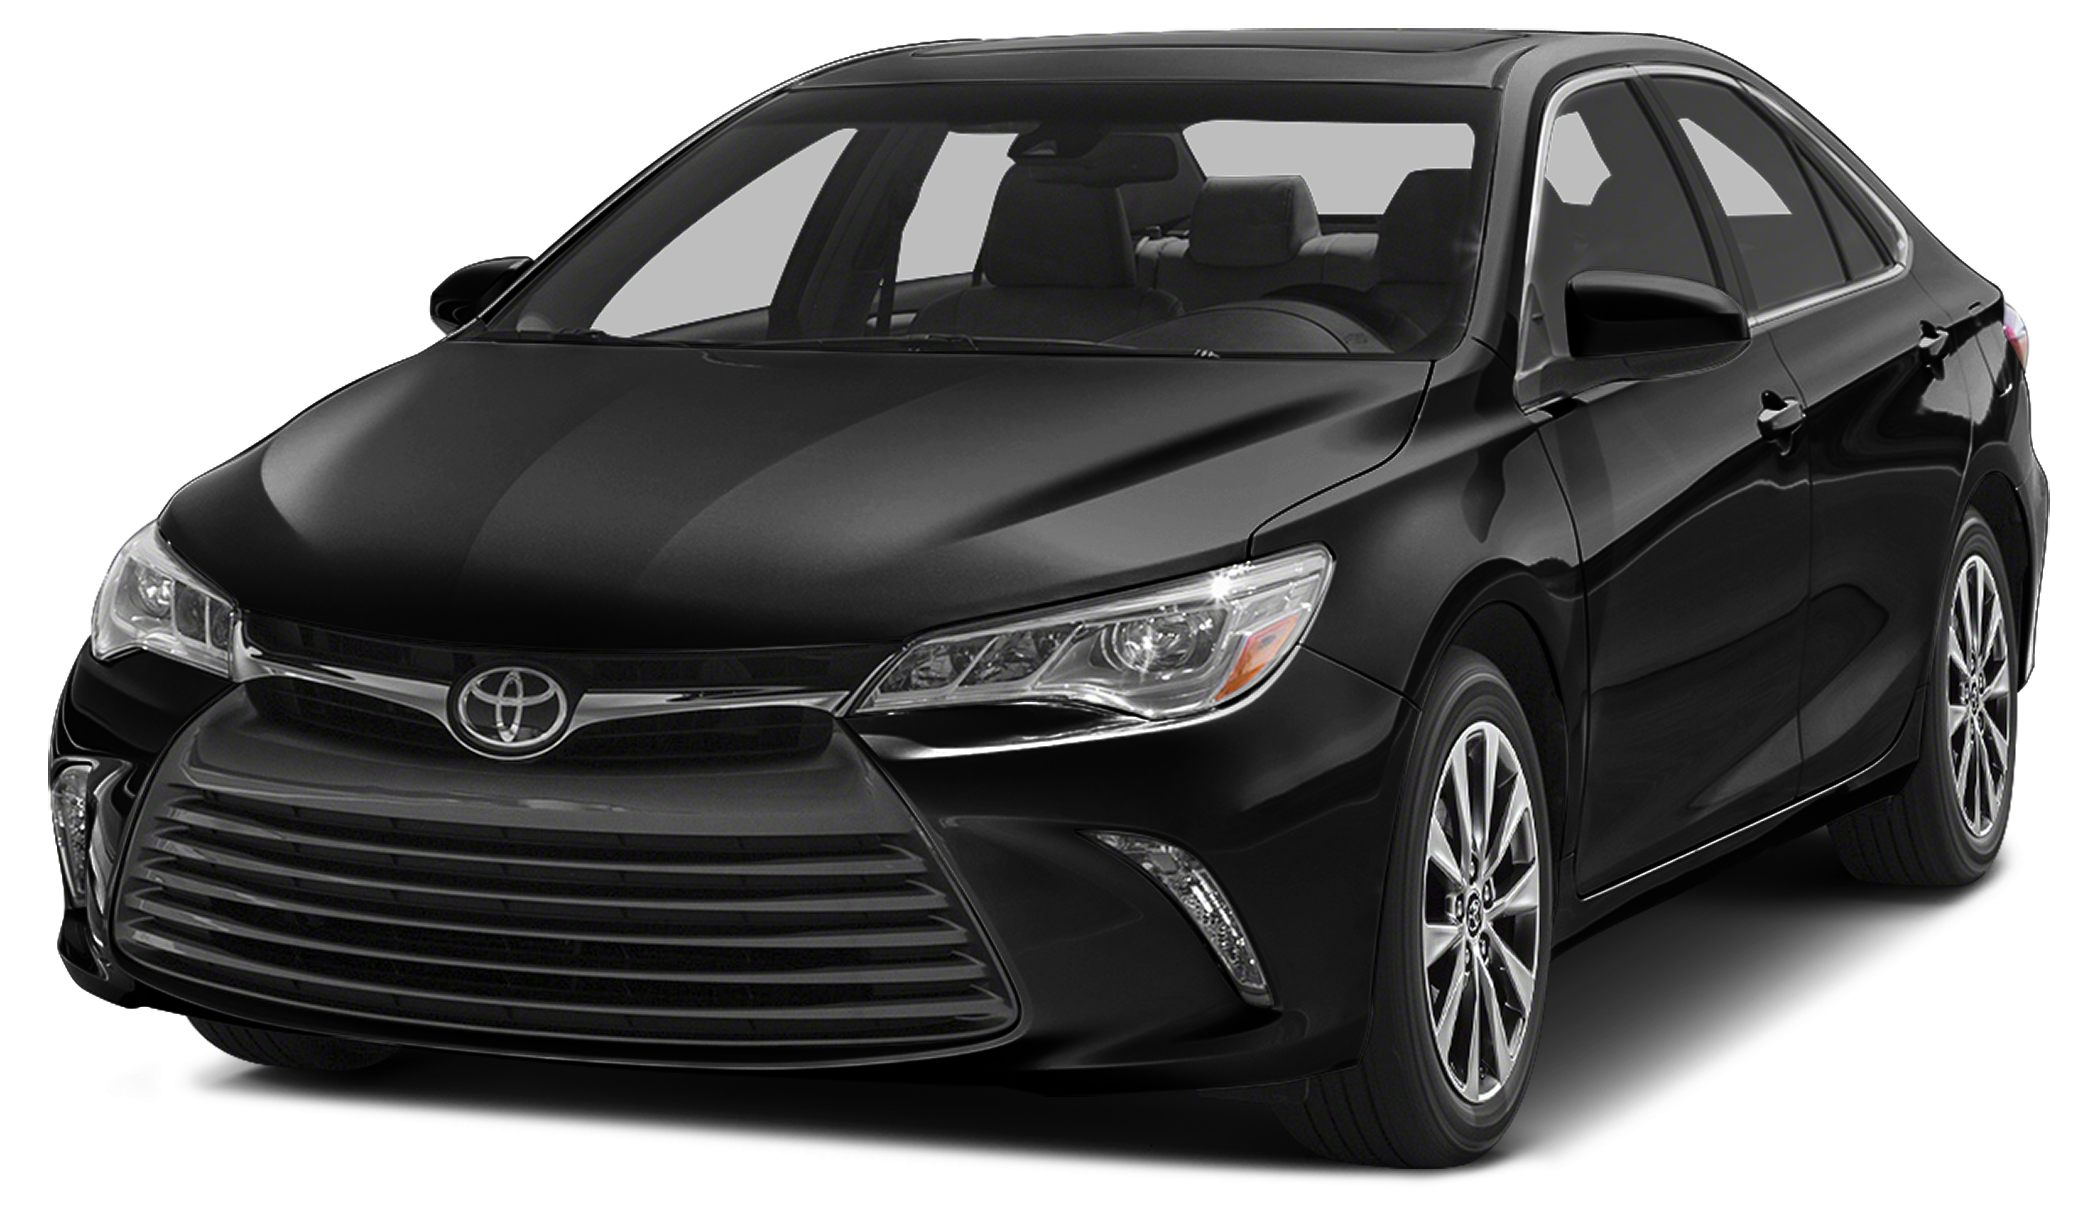 2015 Toyota Camry LE This 2015 Toyota Camry 4dr 4dr Sedan I4 Automatic LE features a 25L 4 CYLIND